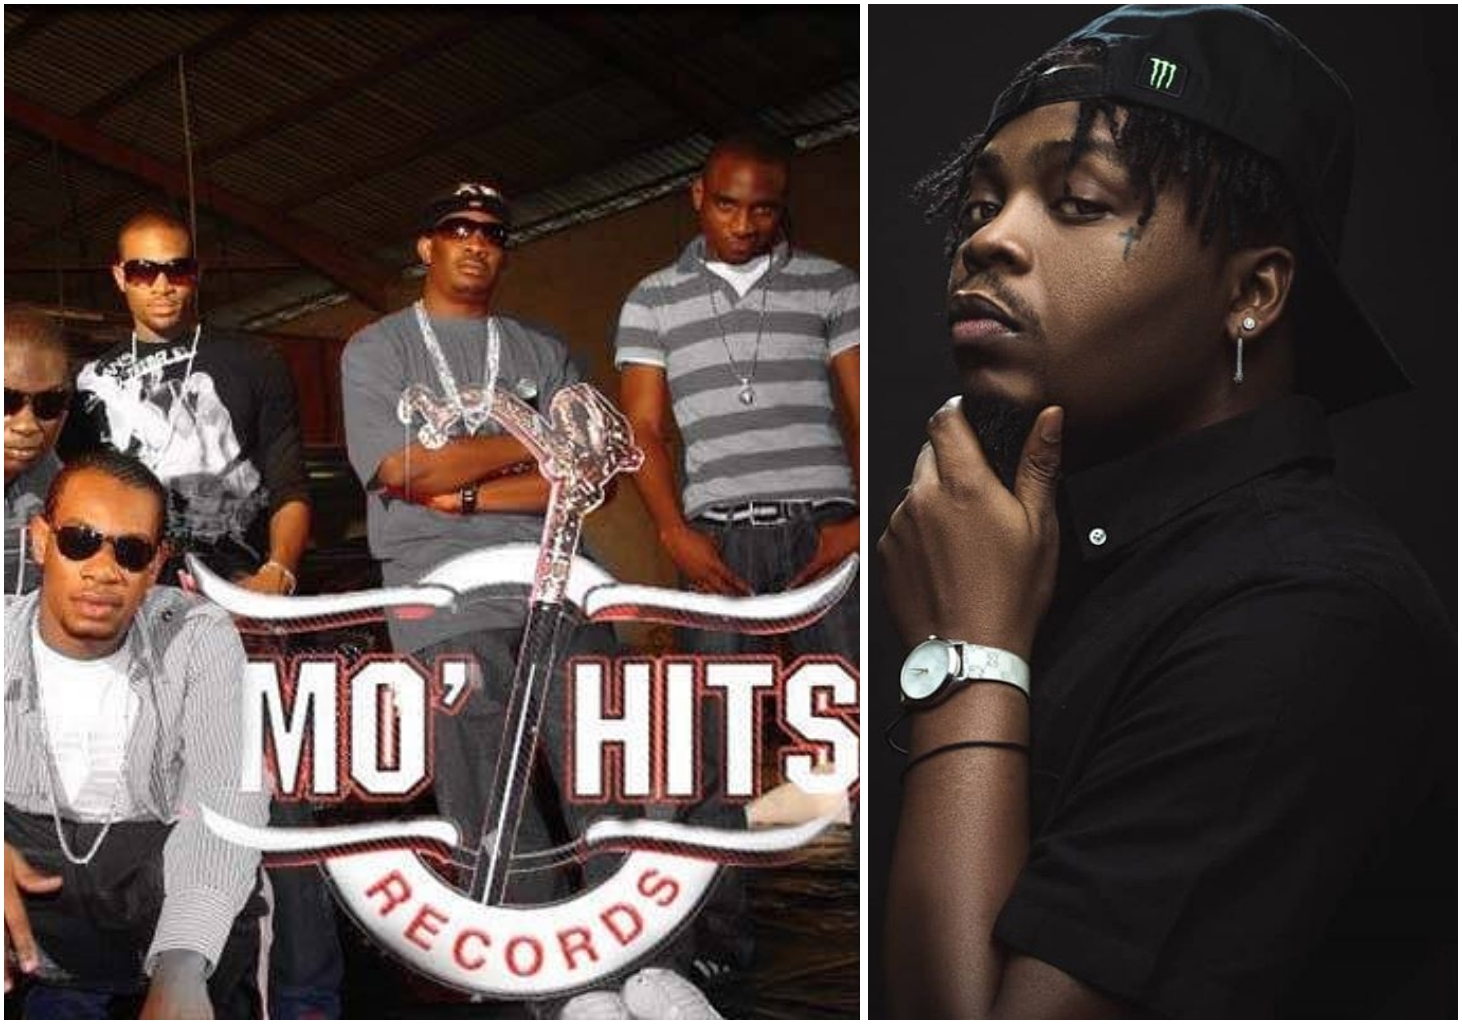 """Mohits gave us good music, thought us how to help"" – Olamide lauds Don Jazzy and Dbanj"